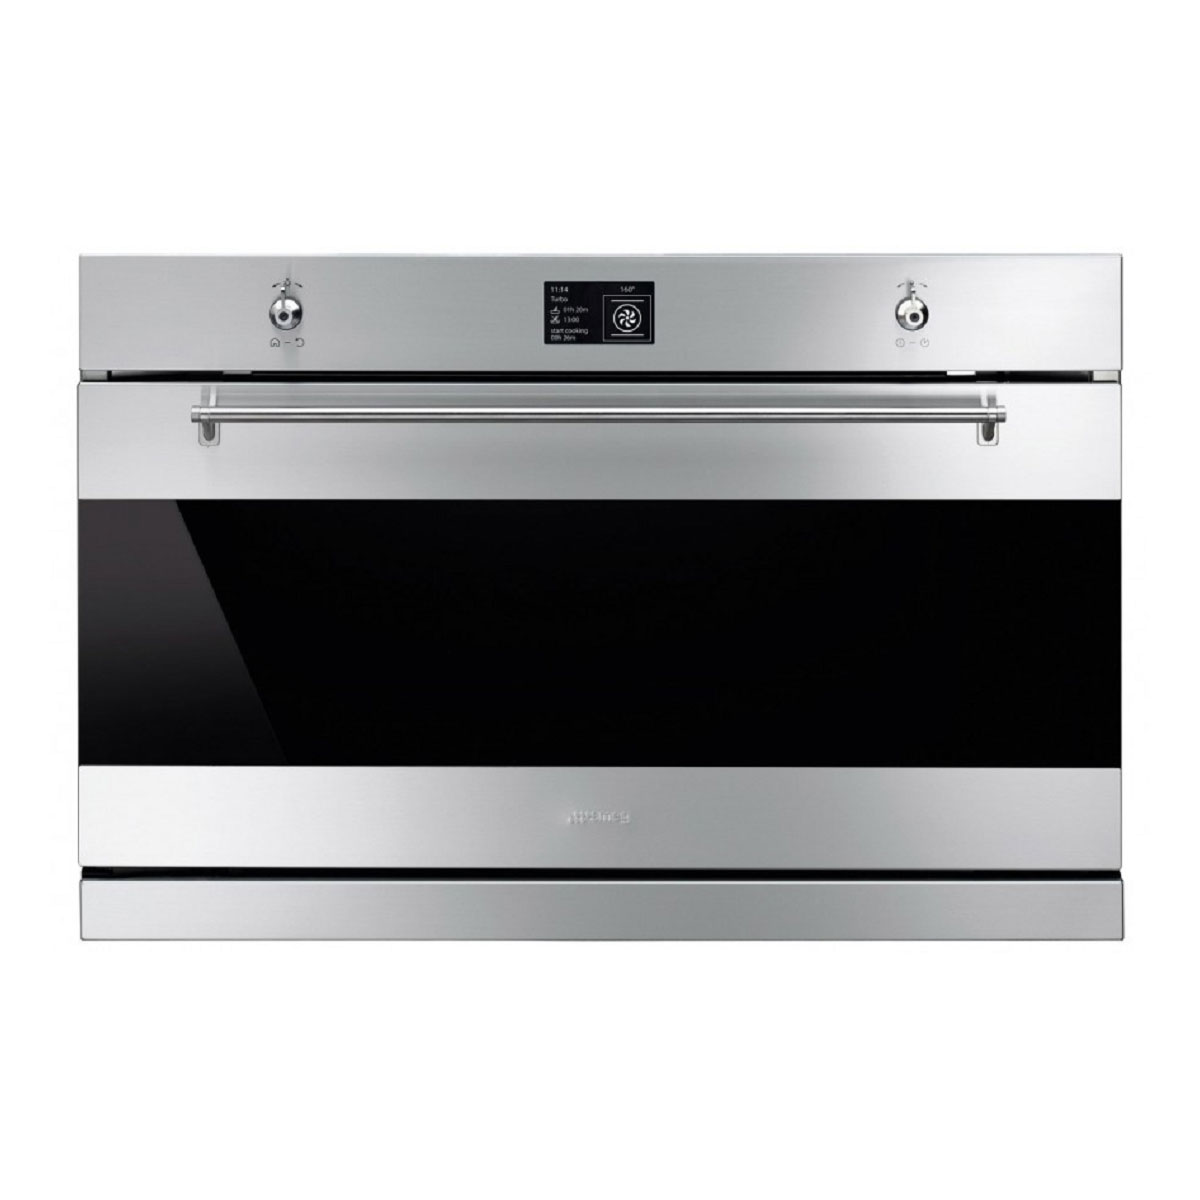 Smeg SFPA9395X 90Litres Pyrolytic Built-In Oven 27726